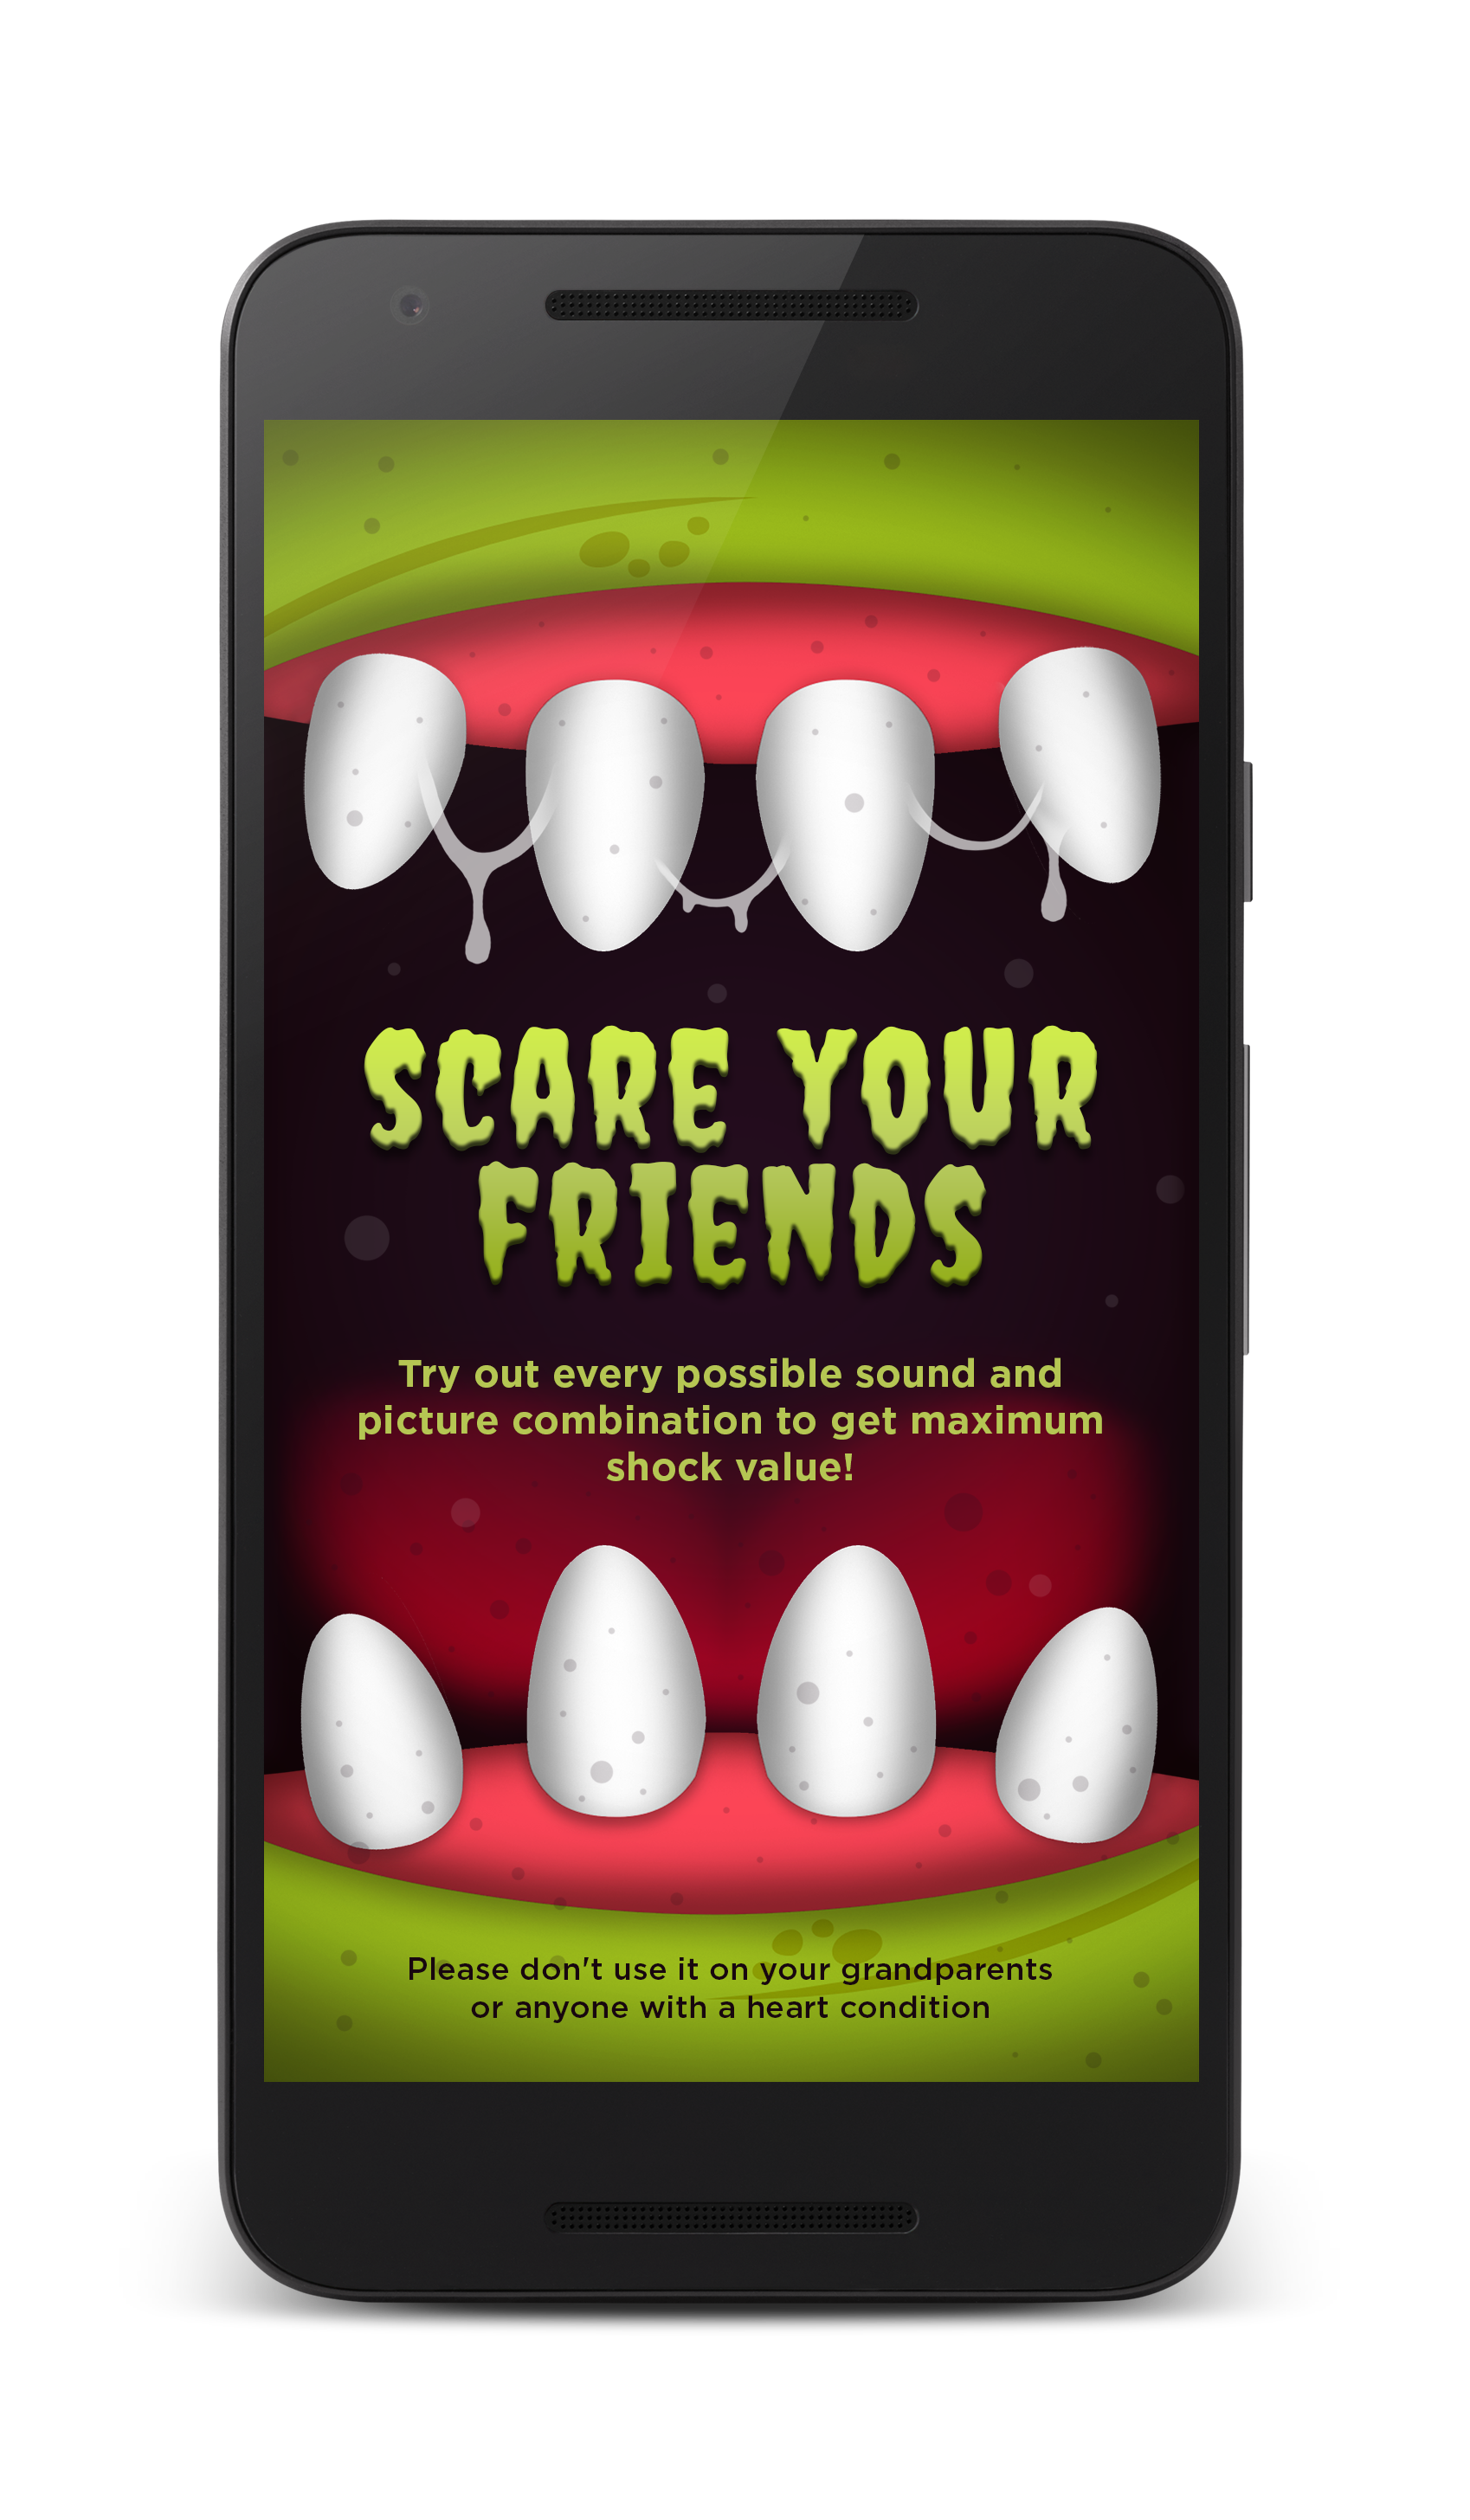 Scare and record your friends